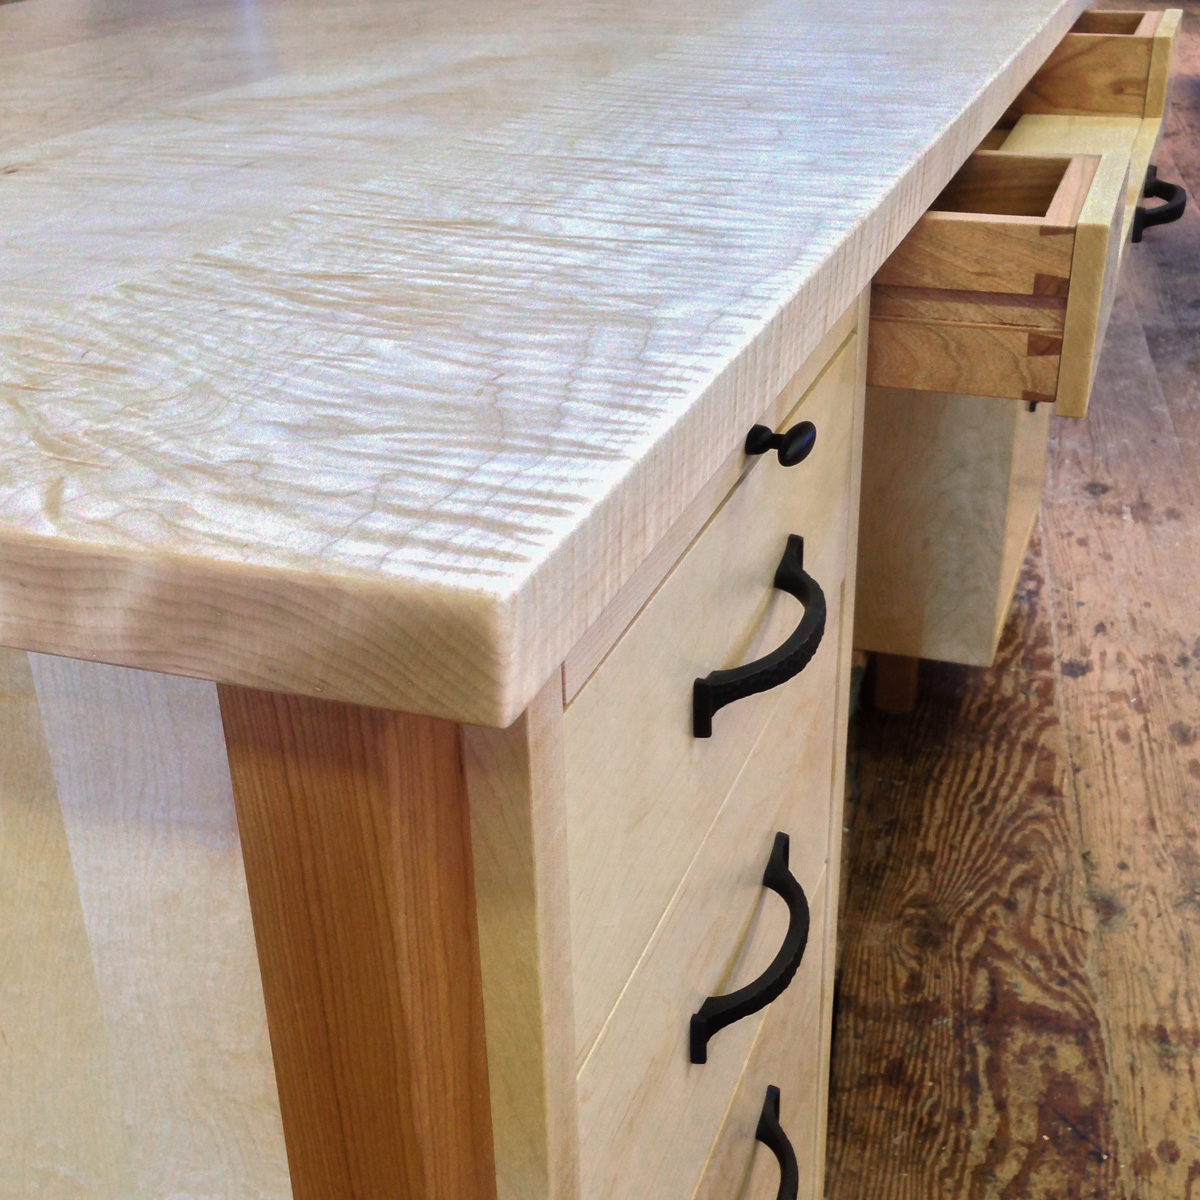 Desk detail with quilted maple top and cherry legs. Featured pull out writing surfaces on top of both banks of drawers and a central sliding keyboard drawer.